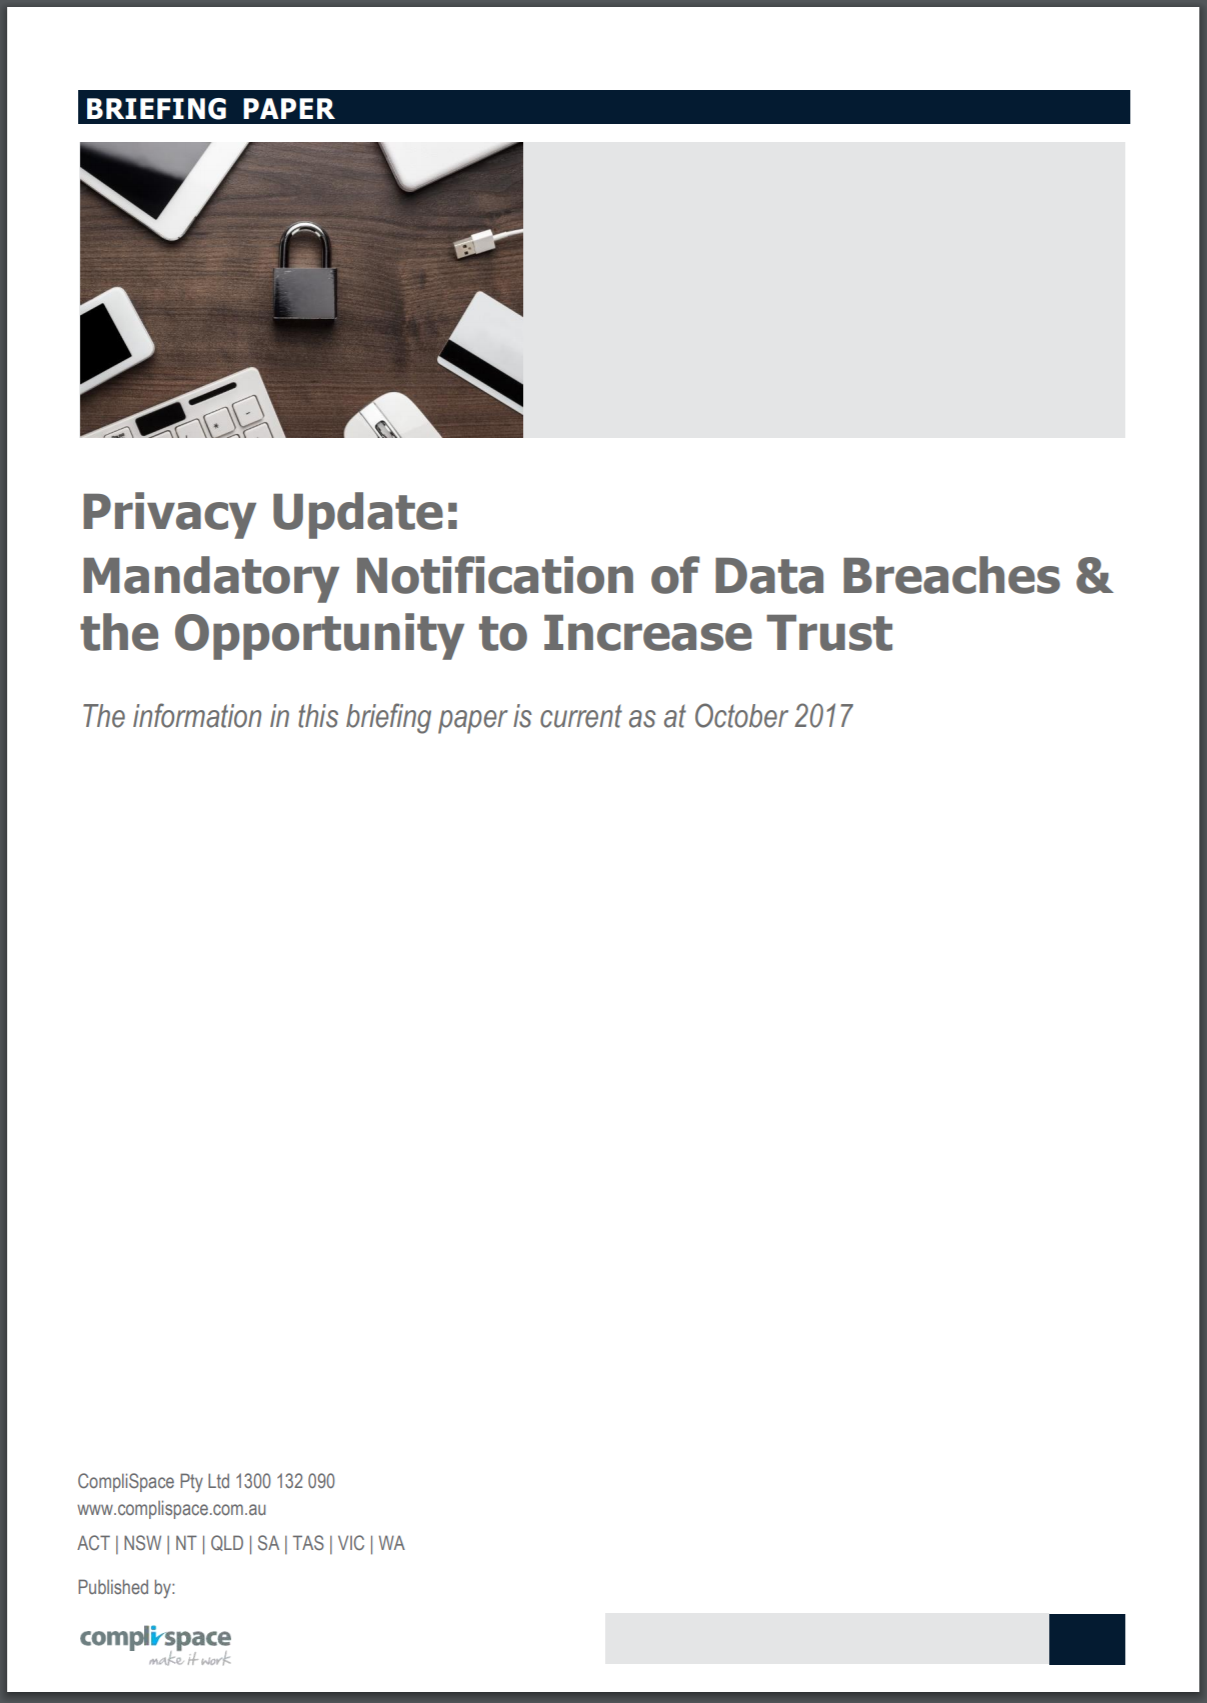 Privacy Update: Mandatory Notification of Data Breaches & the Opportunity to Increase Trust